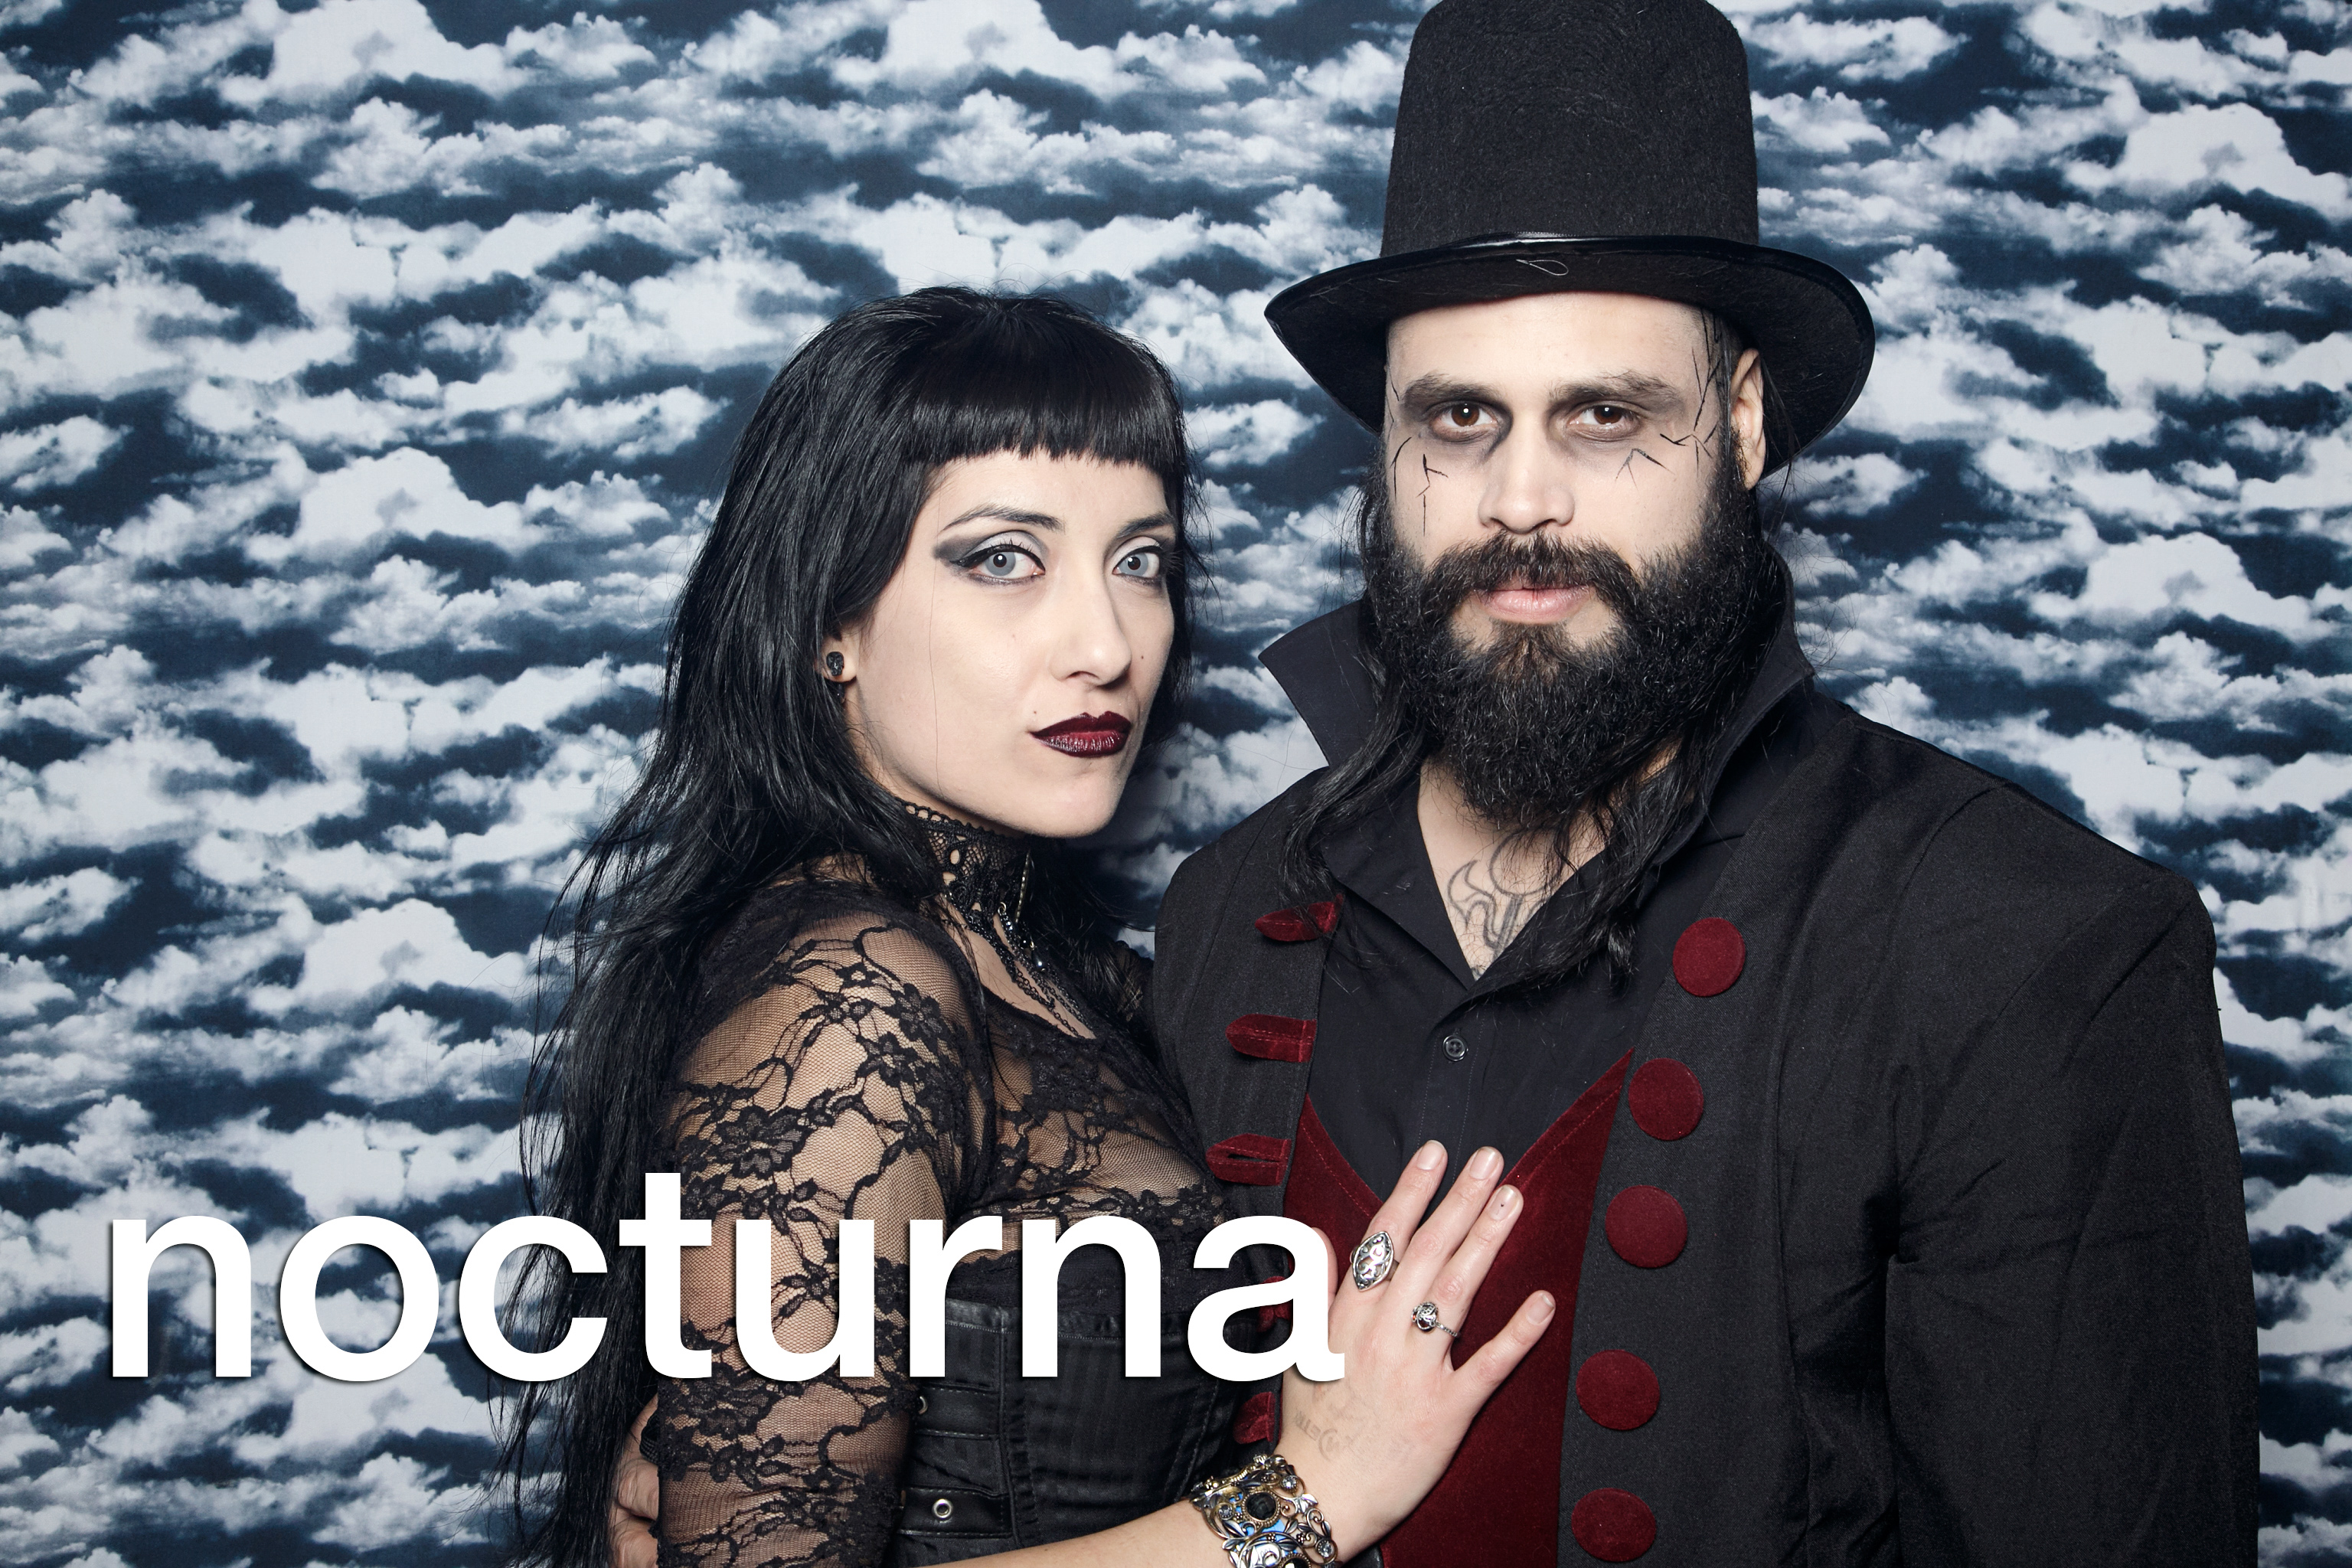 photo booth portraits from nocturna valentines day, february 2017